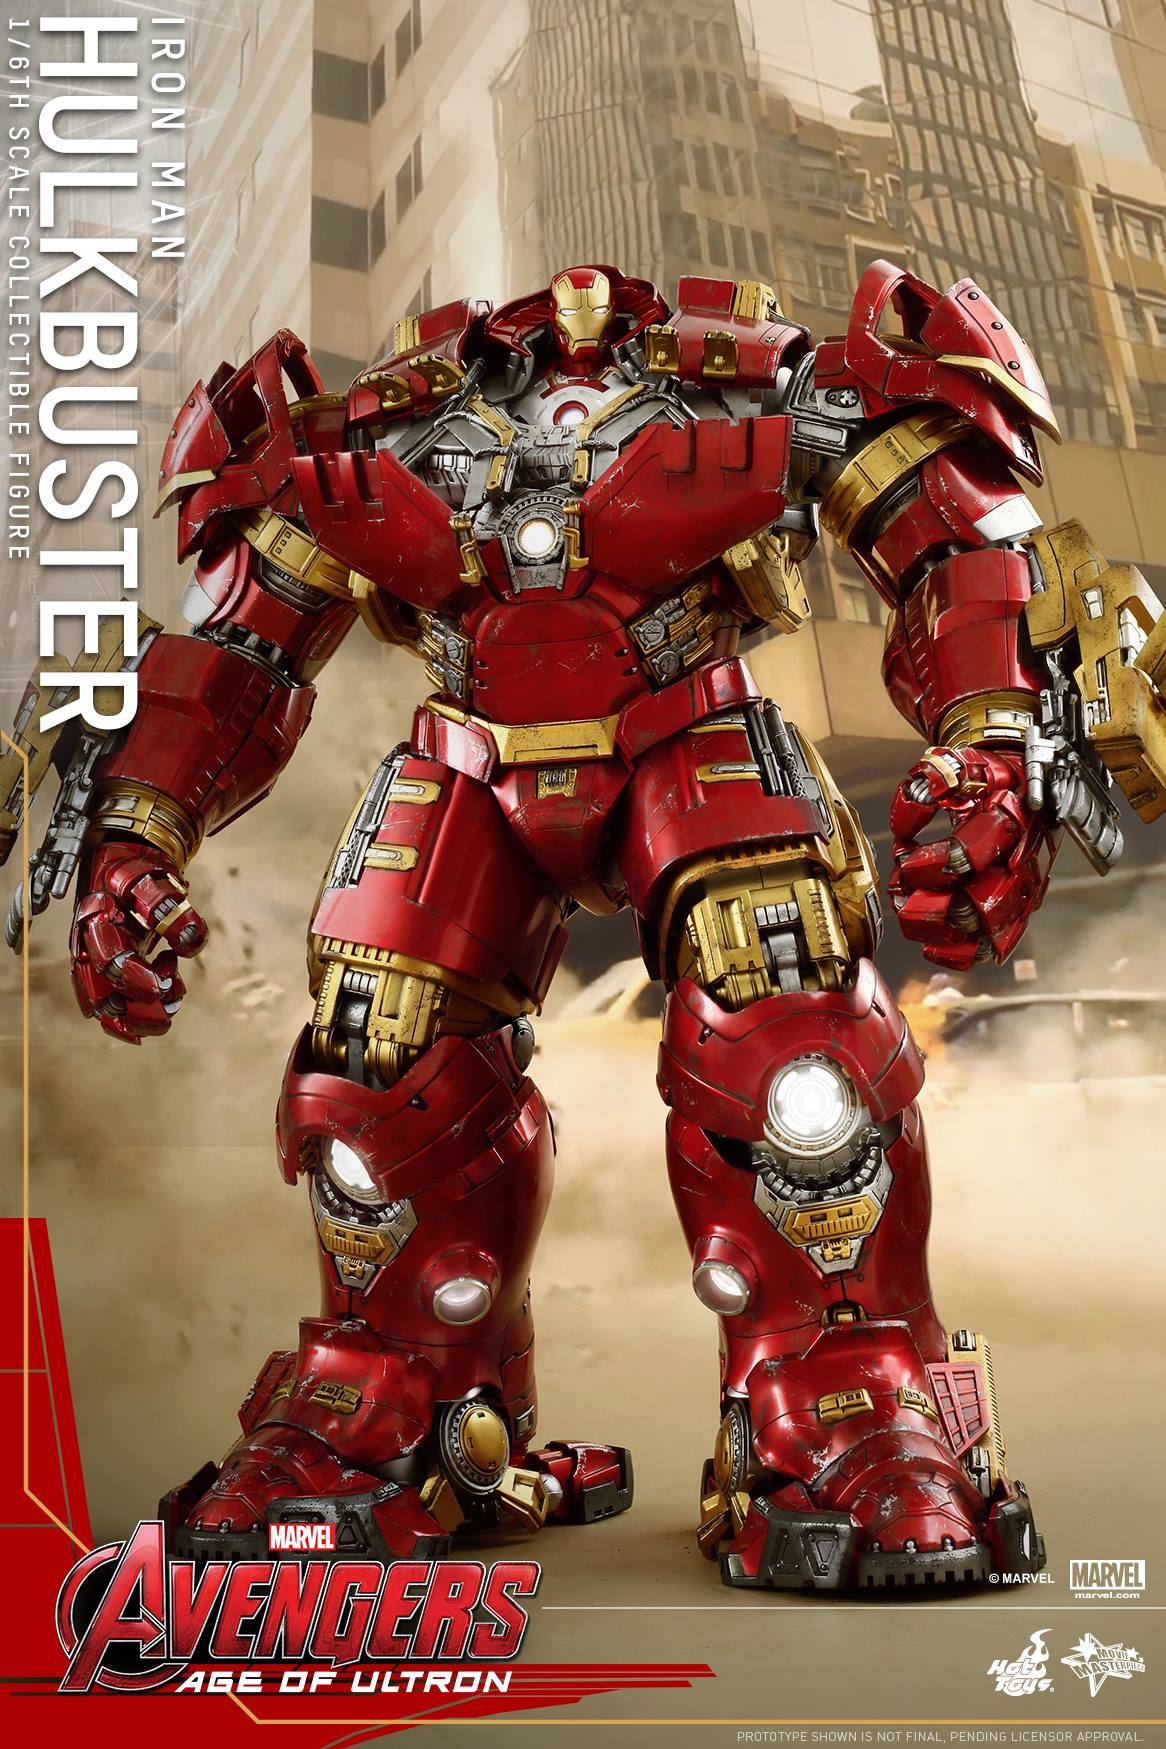 Avengers: Age of Ultron Hot Toys Hulkbuster